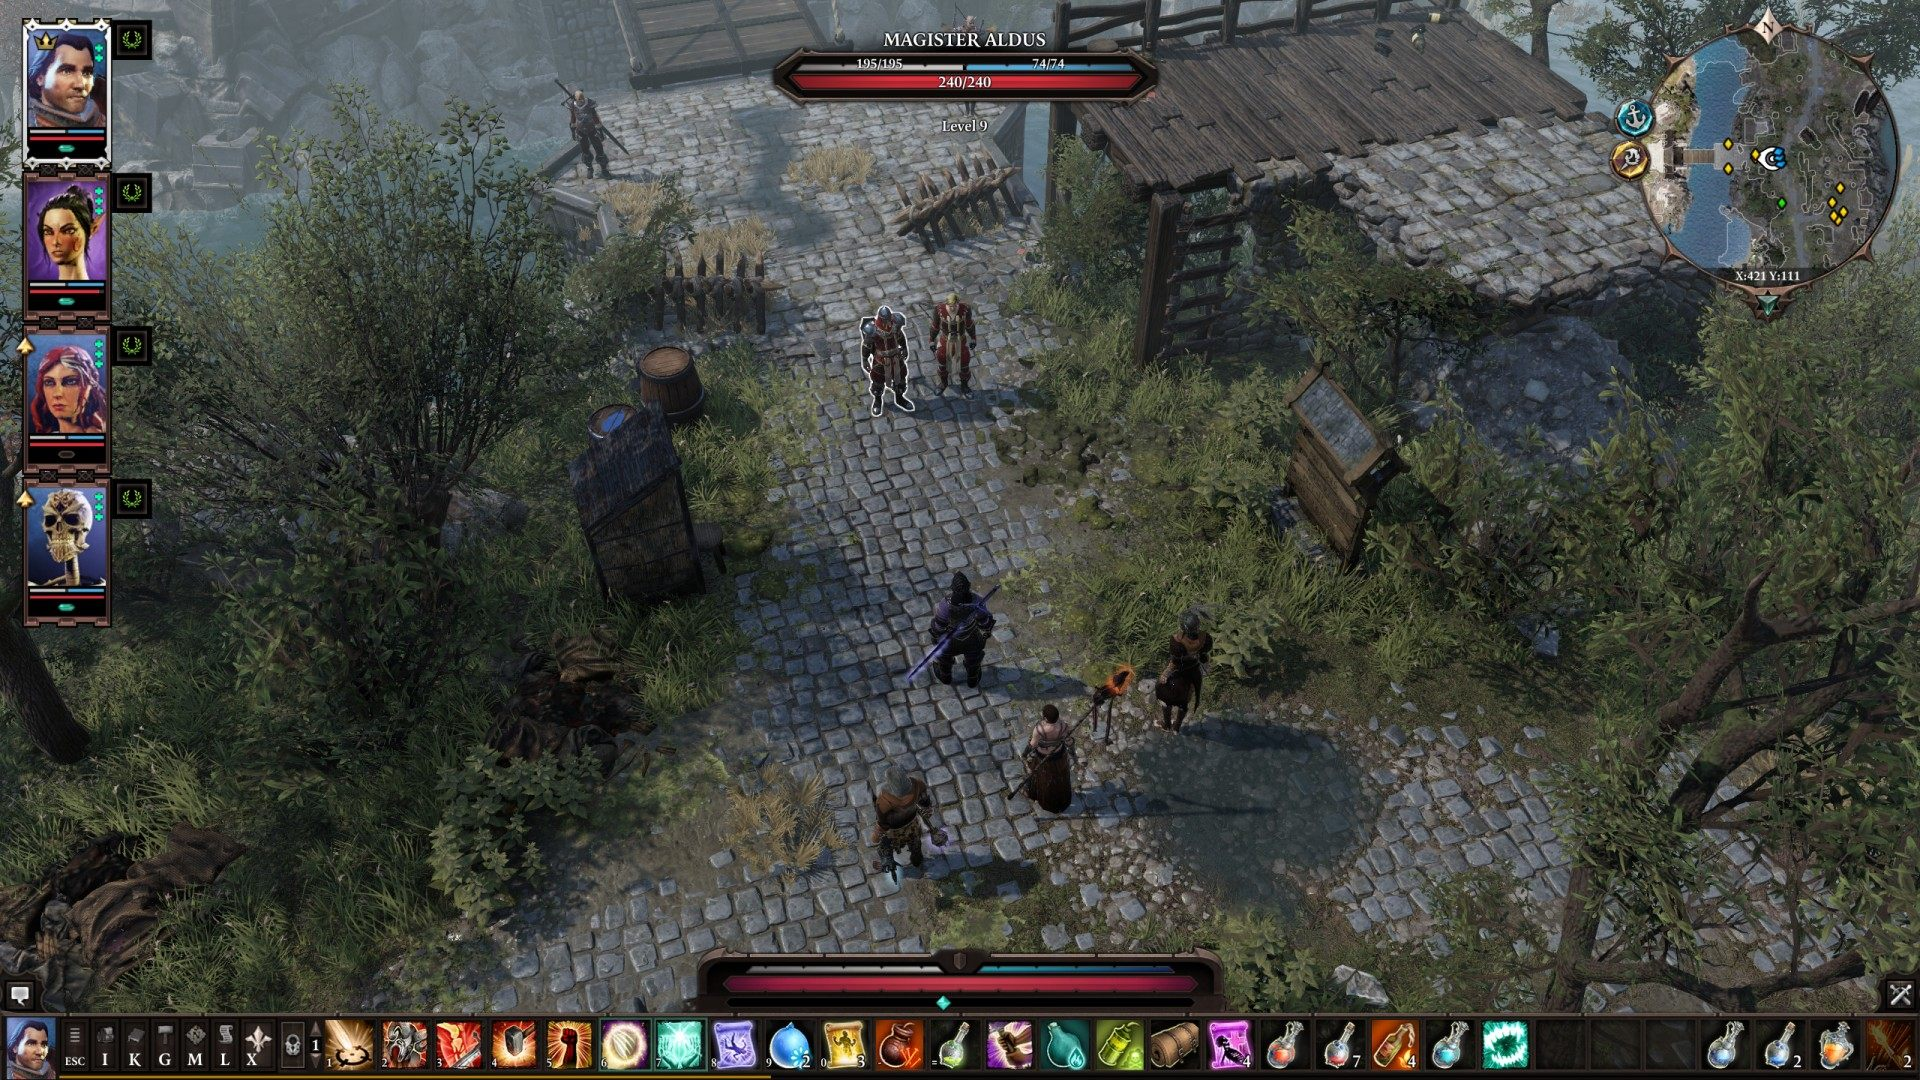 The Law of the Order, Divinity: Original Sin 2 Quest